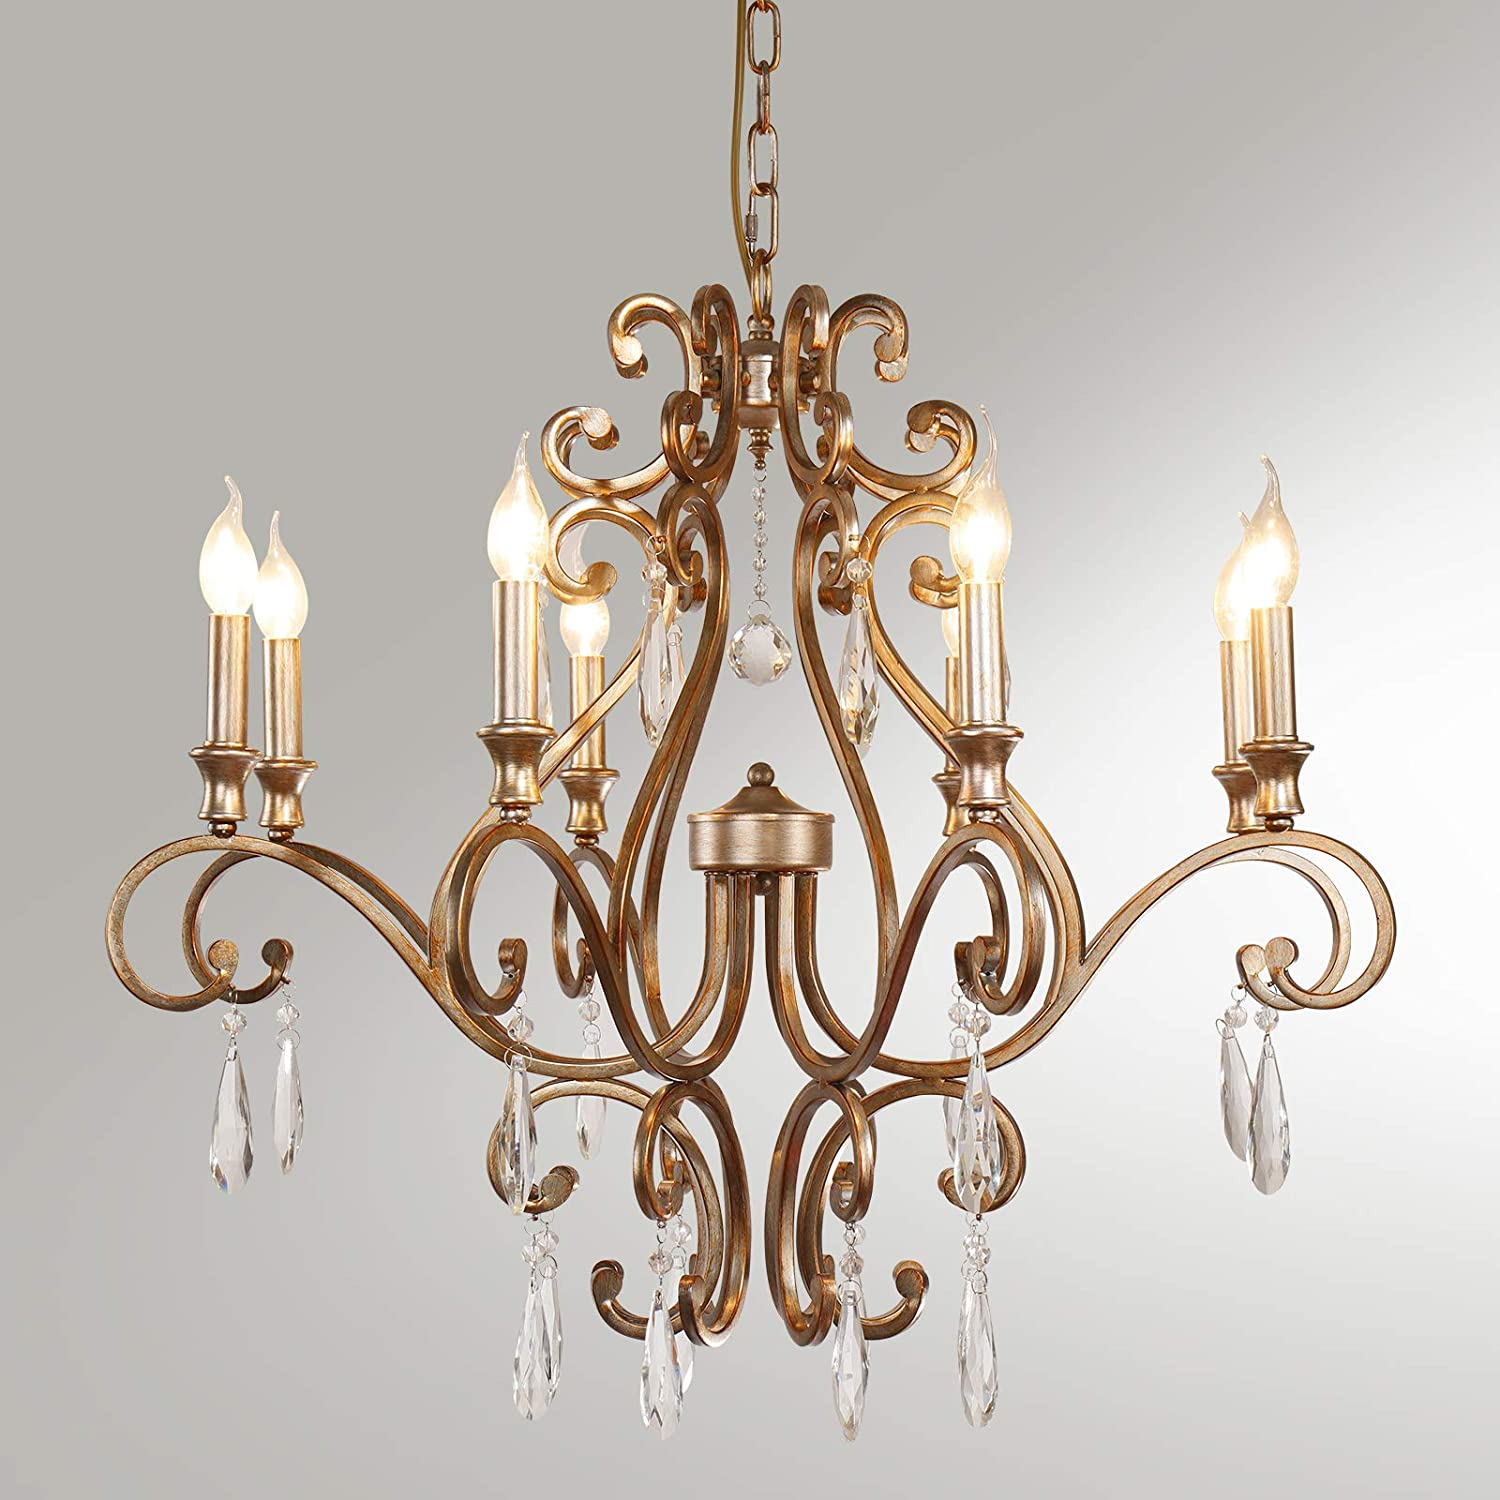 8-Light Max 47% OFF Rustic Selling Crystal Raindrop Candle Style Chandelier Vintage